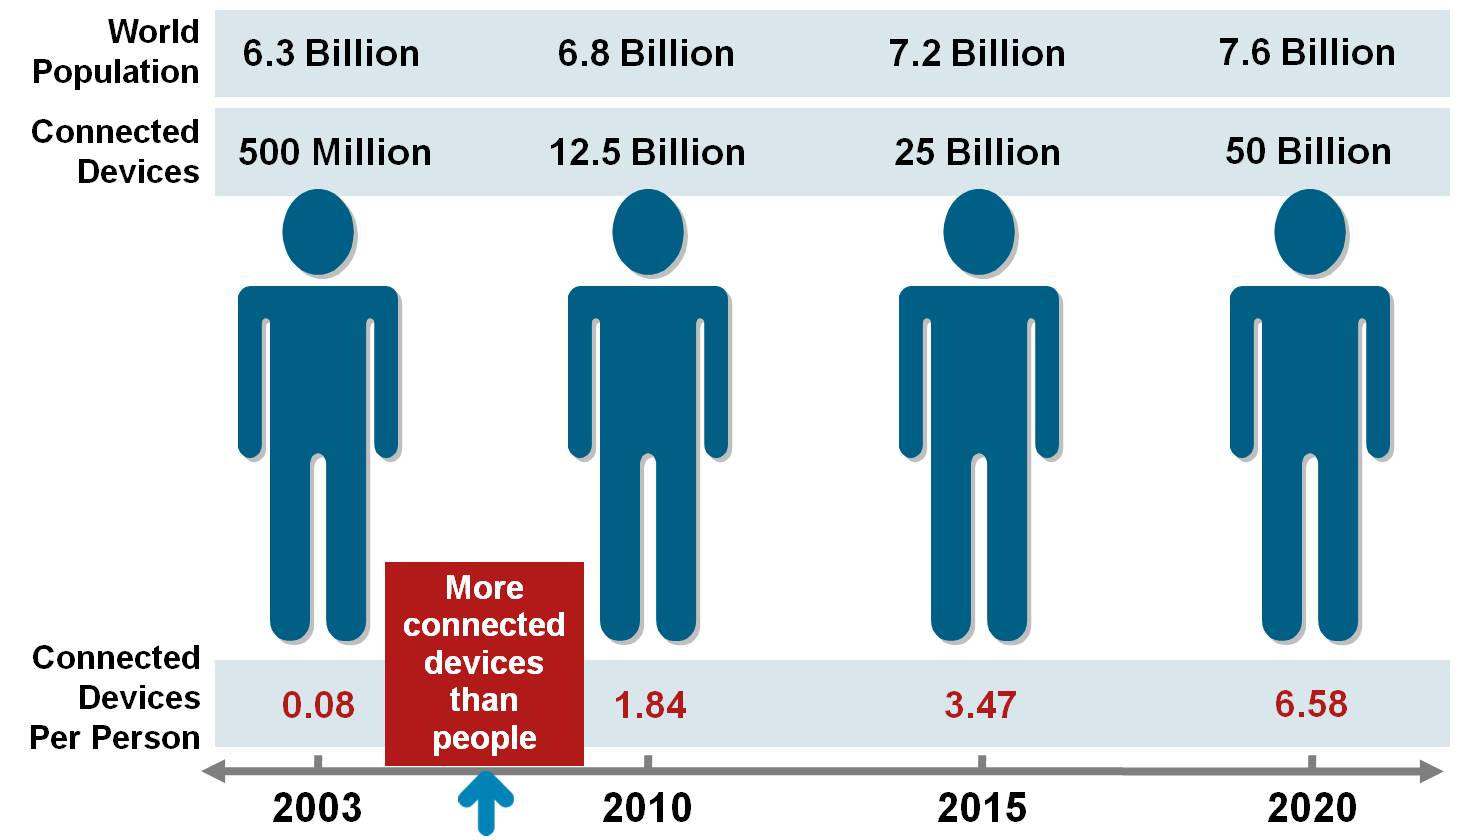 Explosive growth of smartphones and tablet PCs brought the number of devices connected to the Internet to 12.5 billion in 2010, while the world s human population increased to 6.